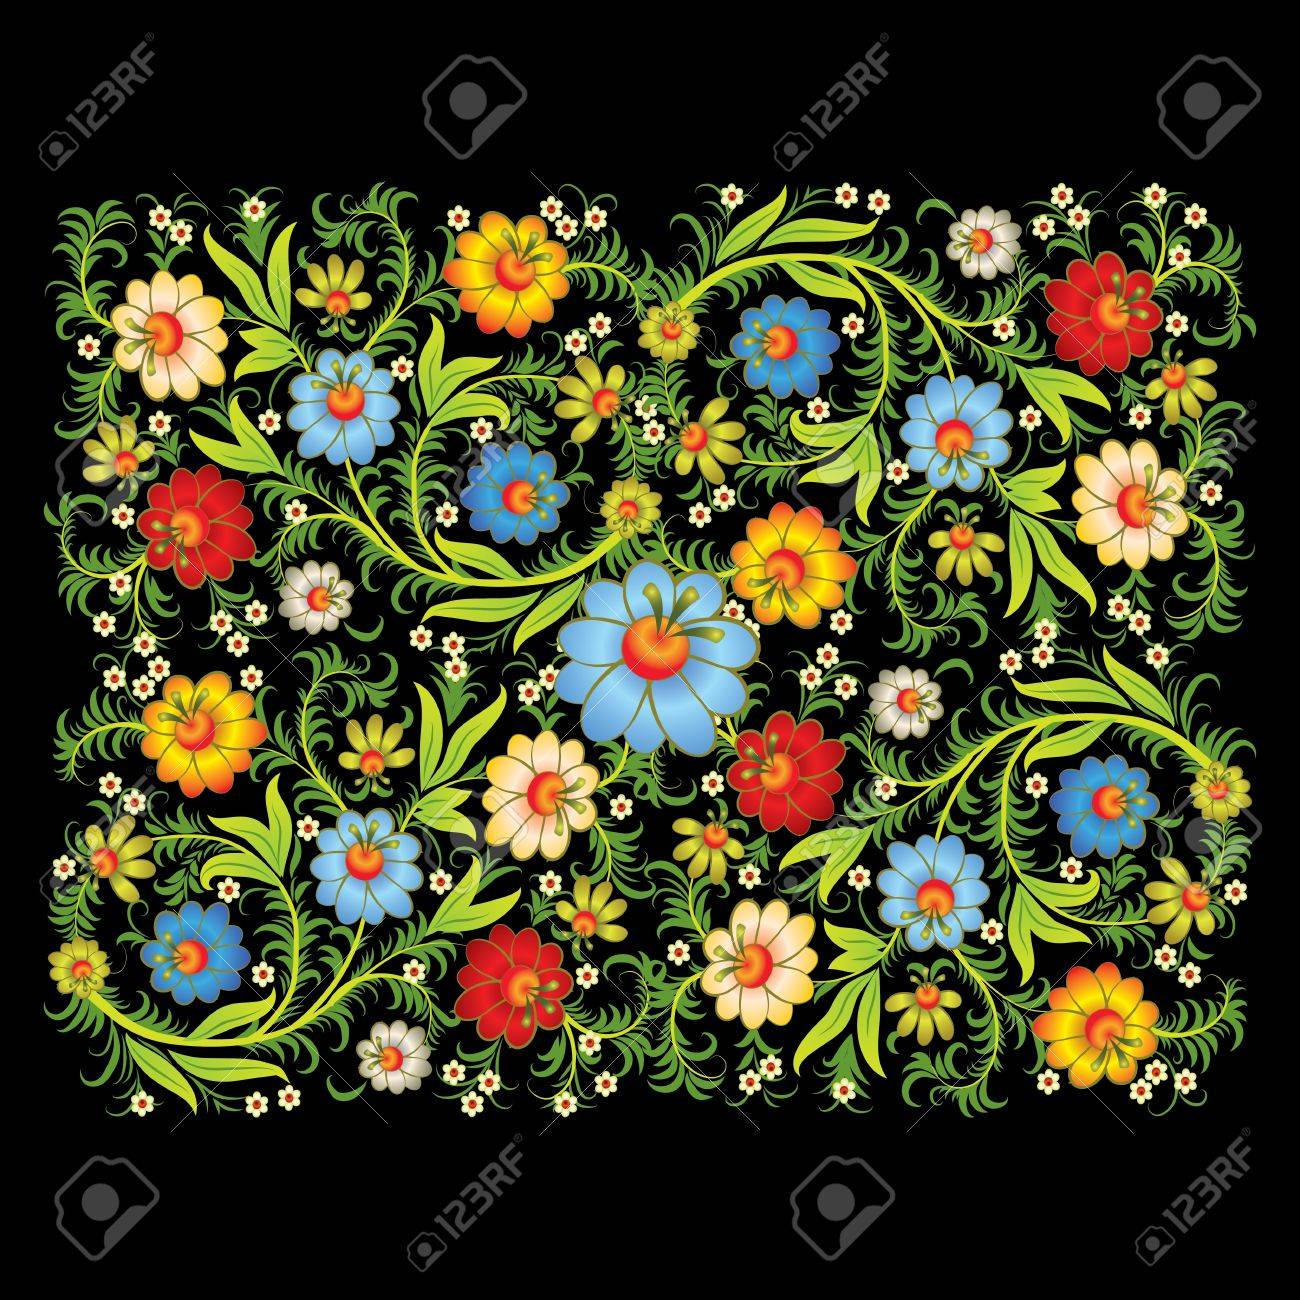 abstract floral ornament with color flowers isolated on a black background Stock Vector - 9567161